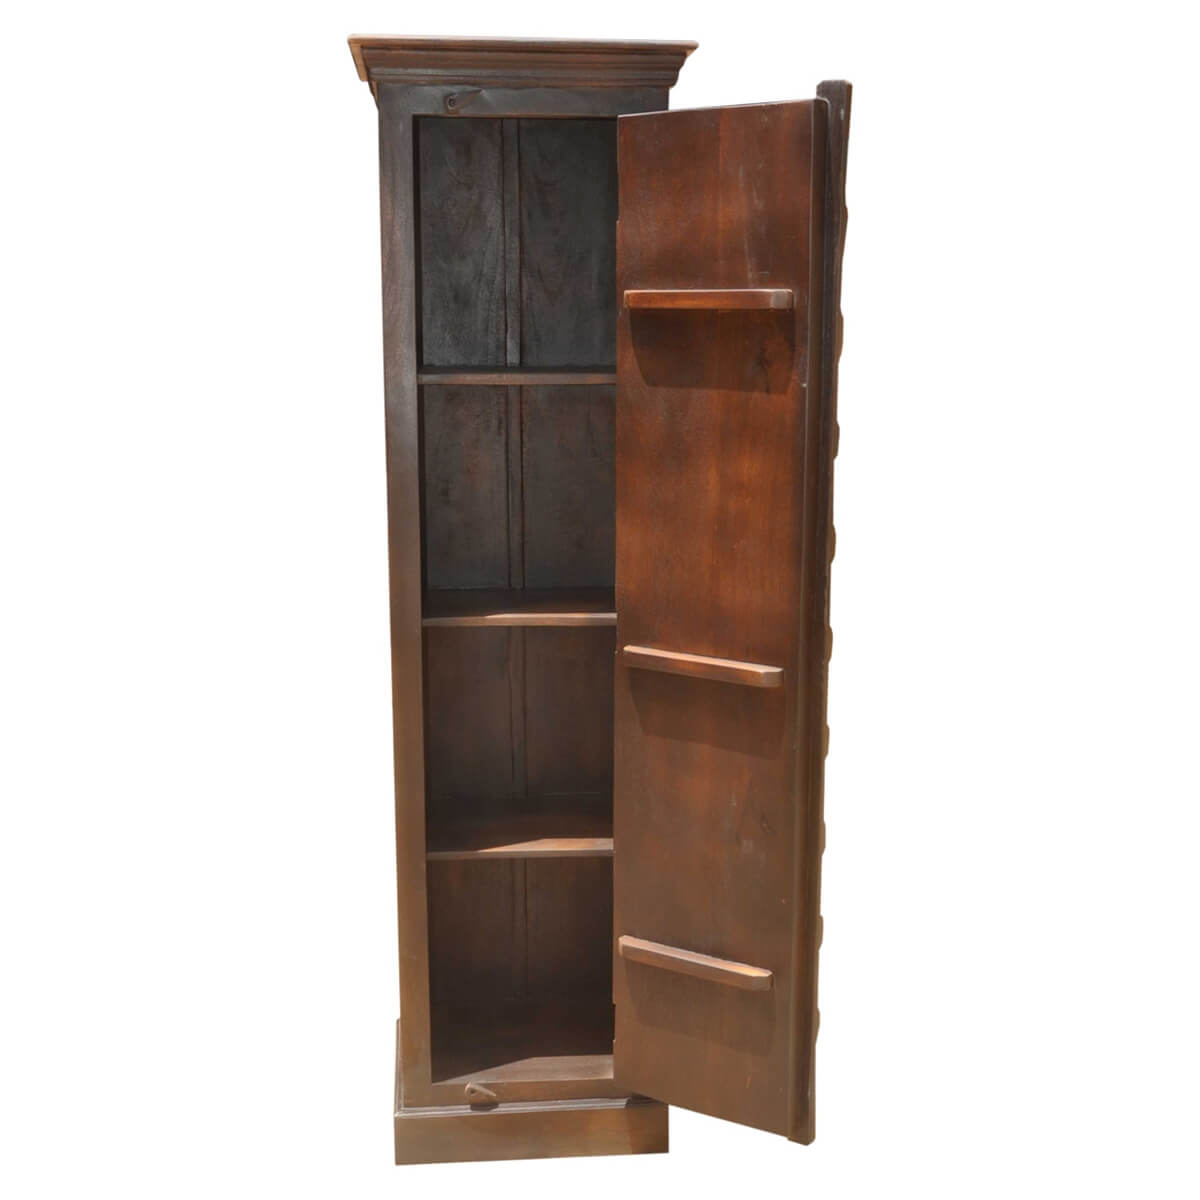 Rustic Solid Wood Brass Accent Narrow Armoire Cabinet With ...